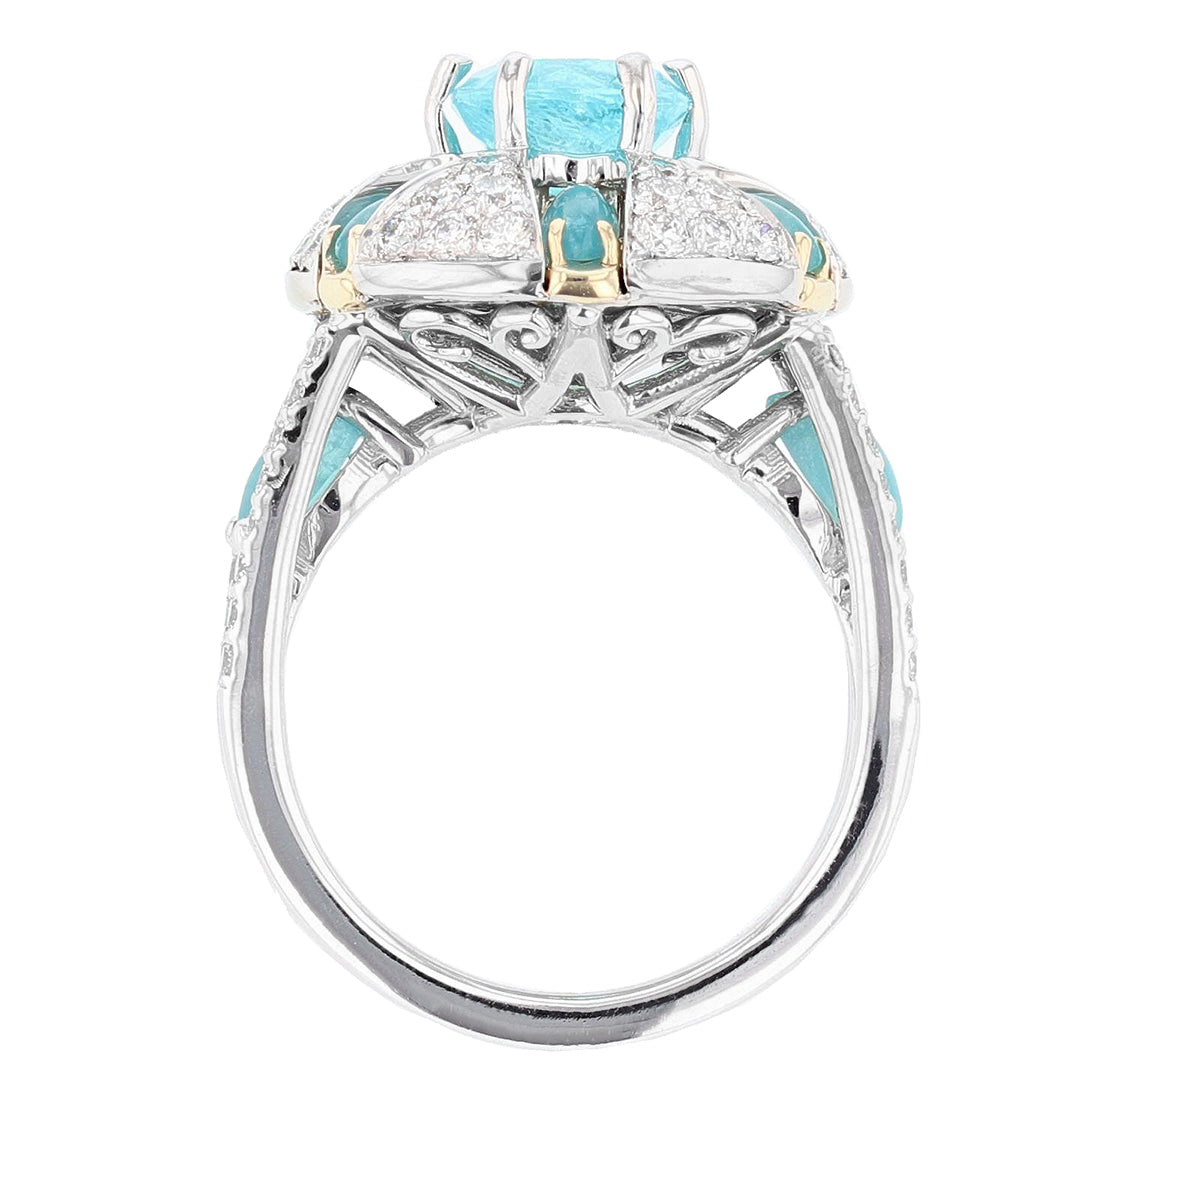 One of a Kind Round and Marquise Paraiba Tourmaline and Diamond Ring